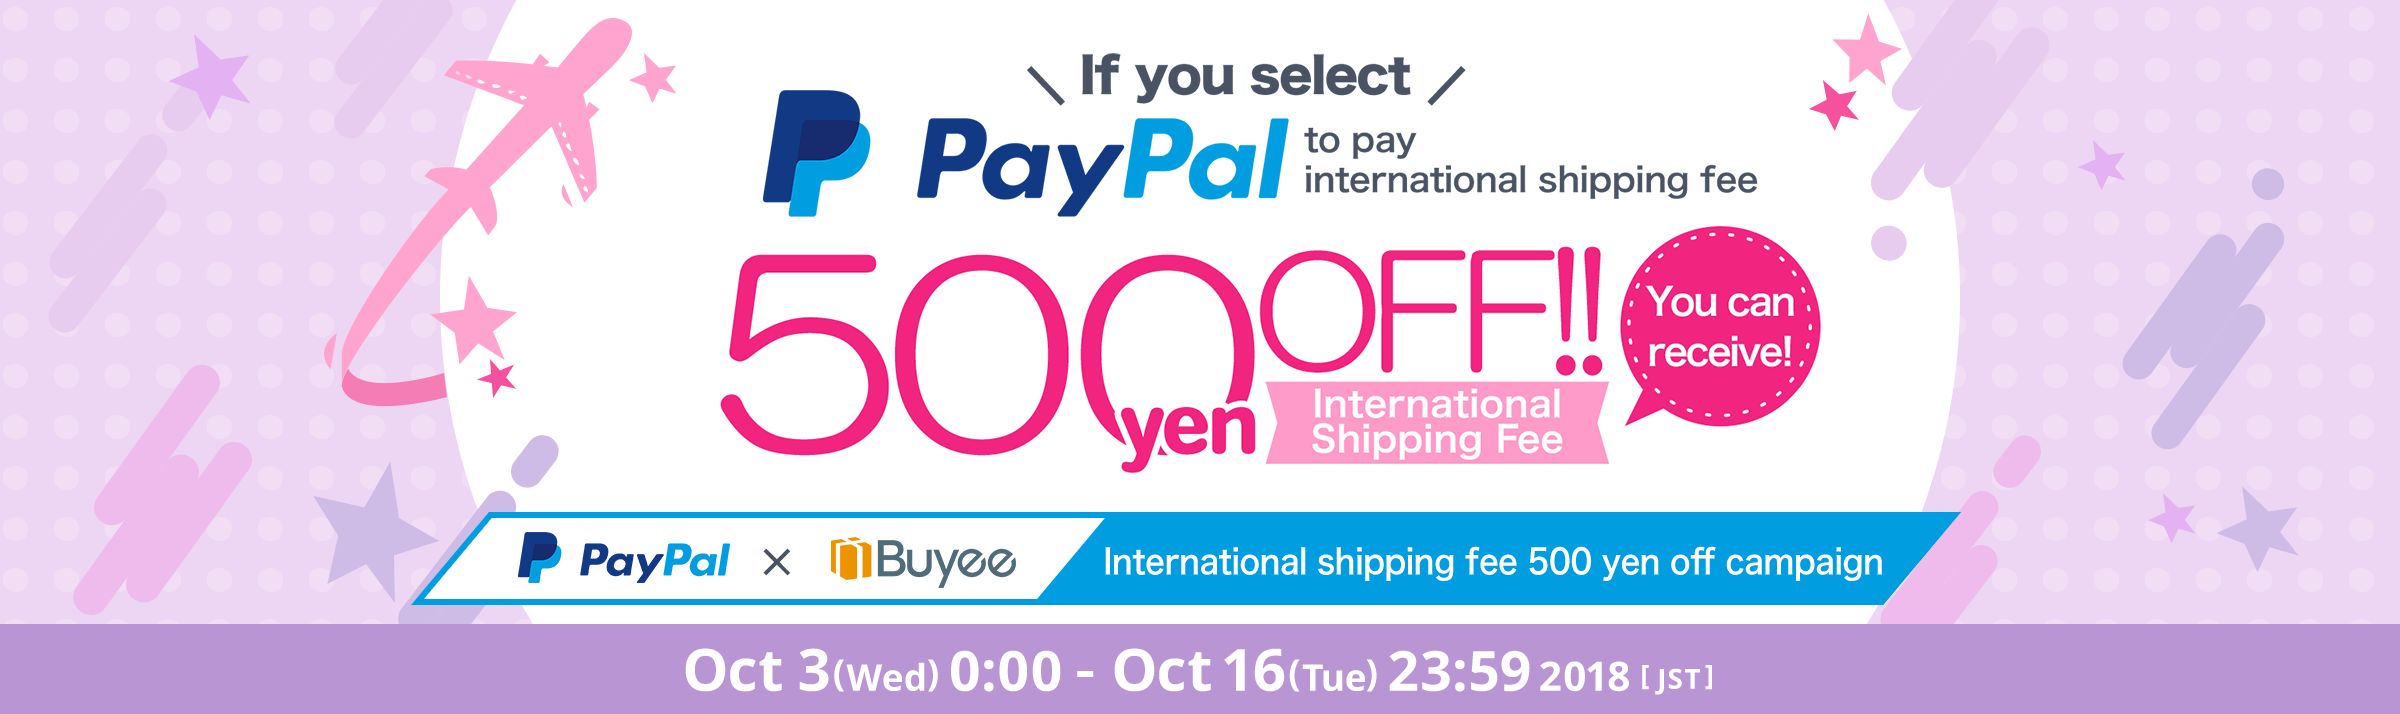 Using PayPal to pay the international shipping fee during the campaign period will grant you a 500 yen discount coupon for your next international shipping.